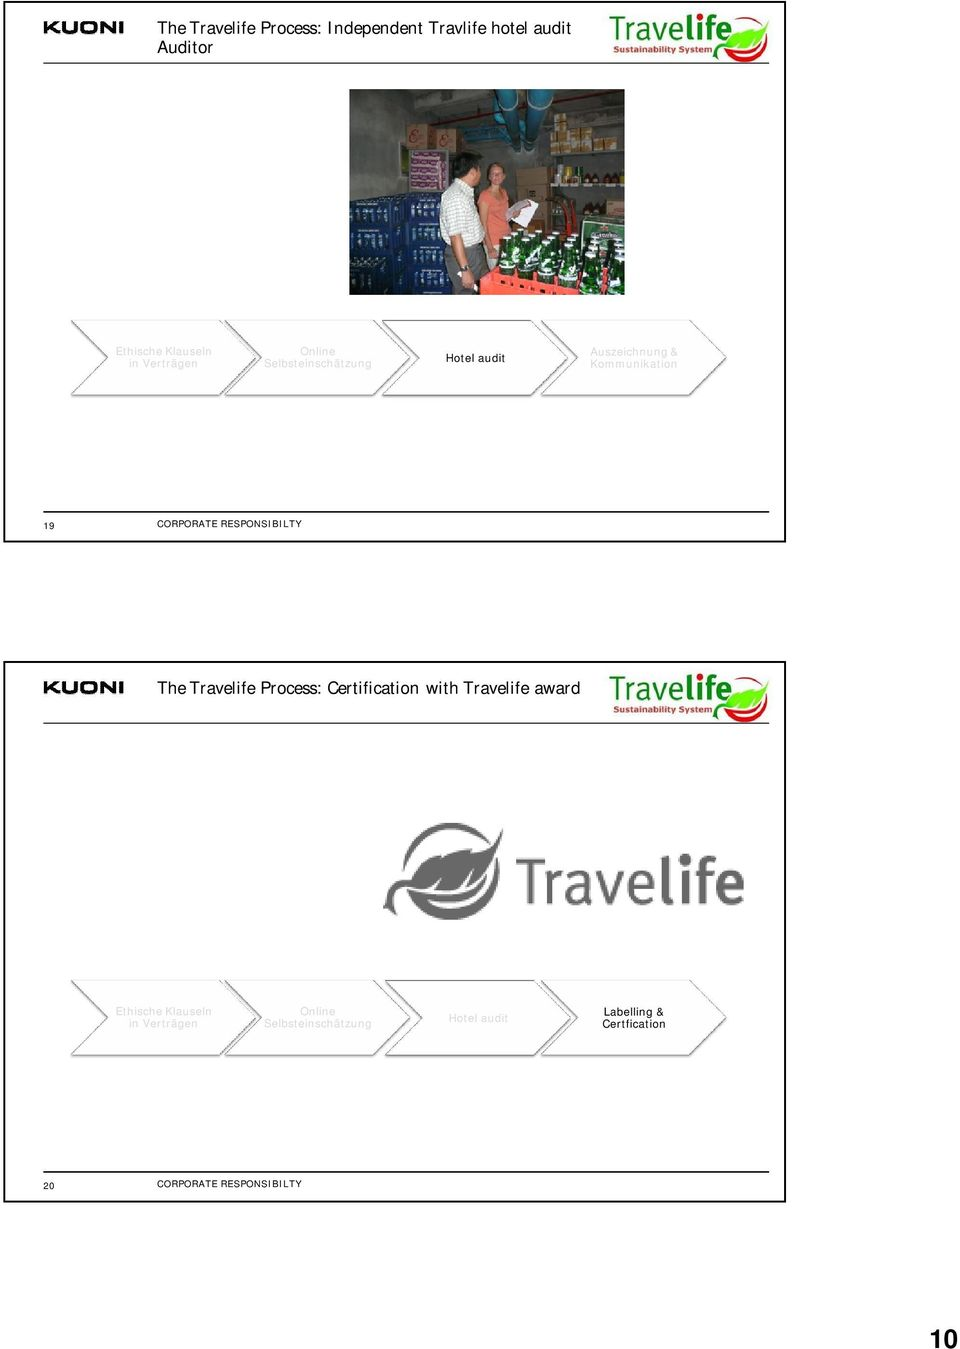 Kommunikation The Travelife Process: Certification with Travelife award Ethische